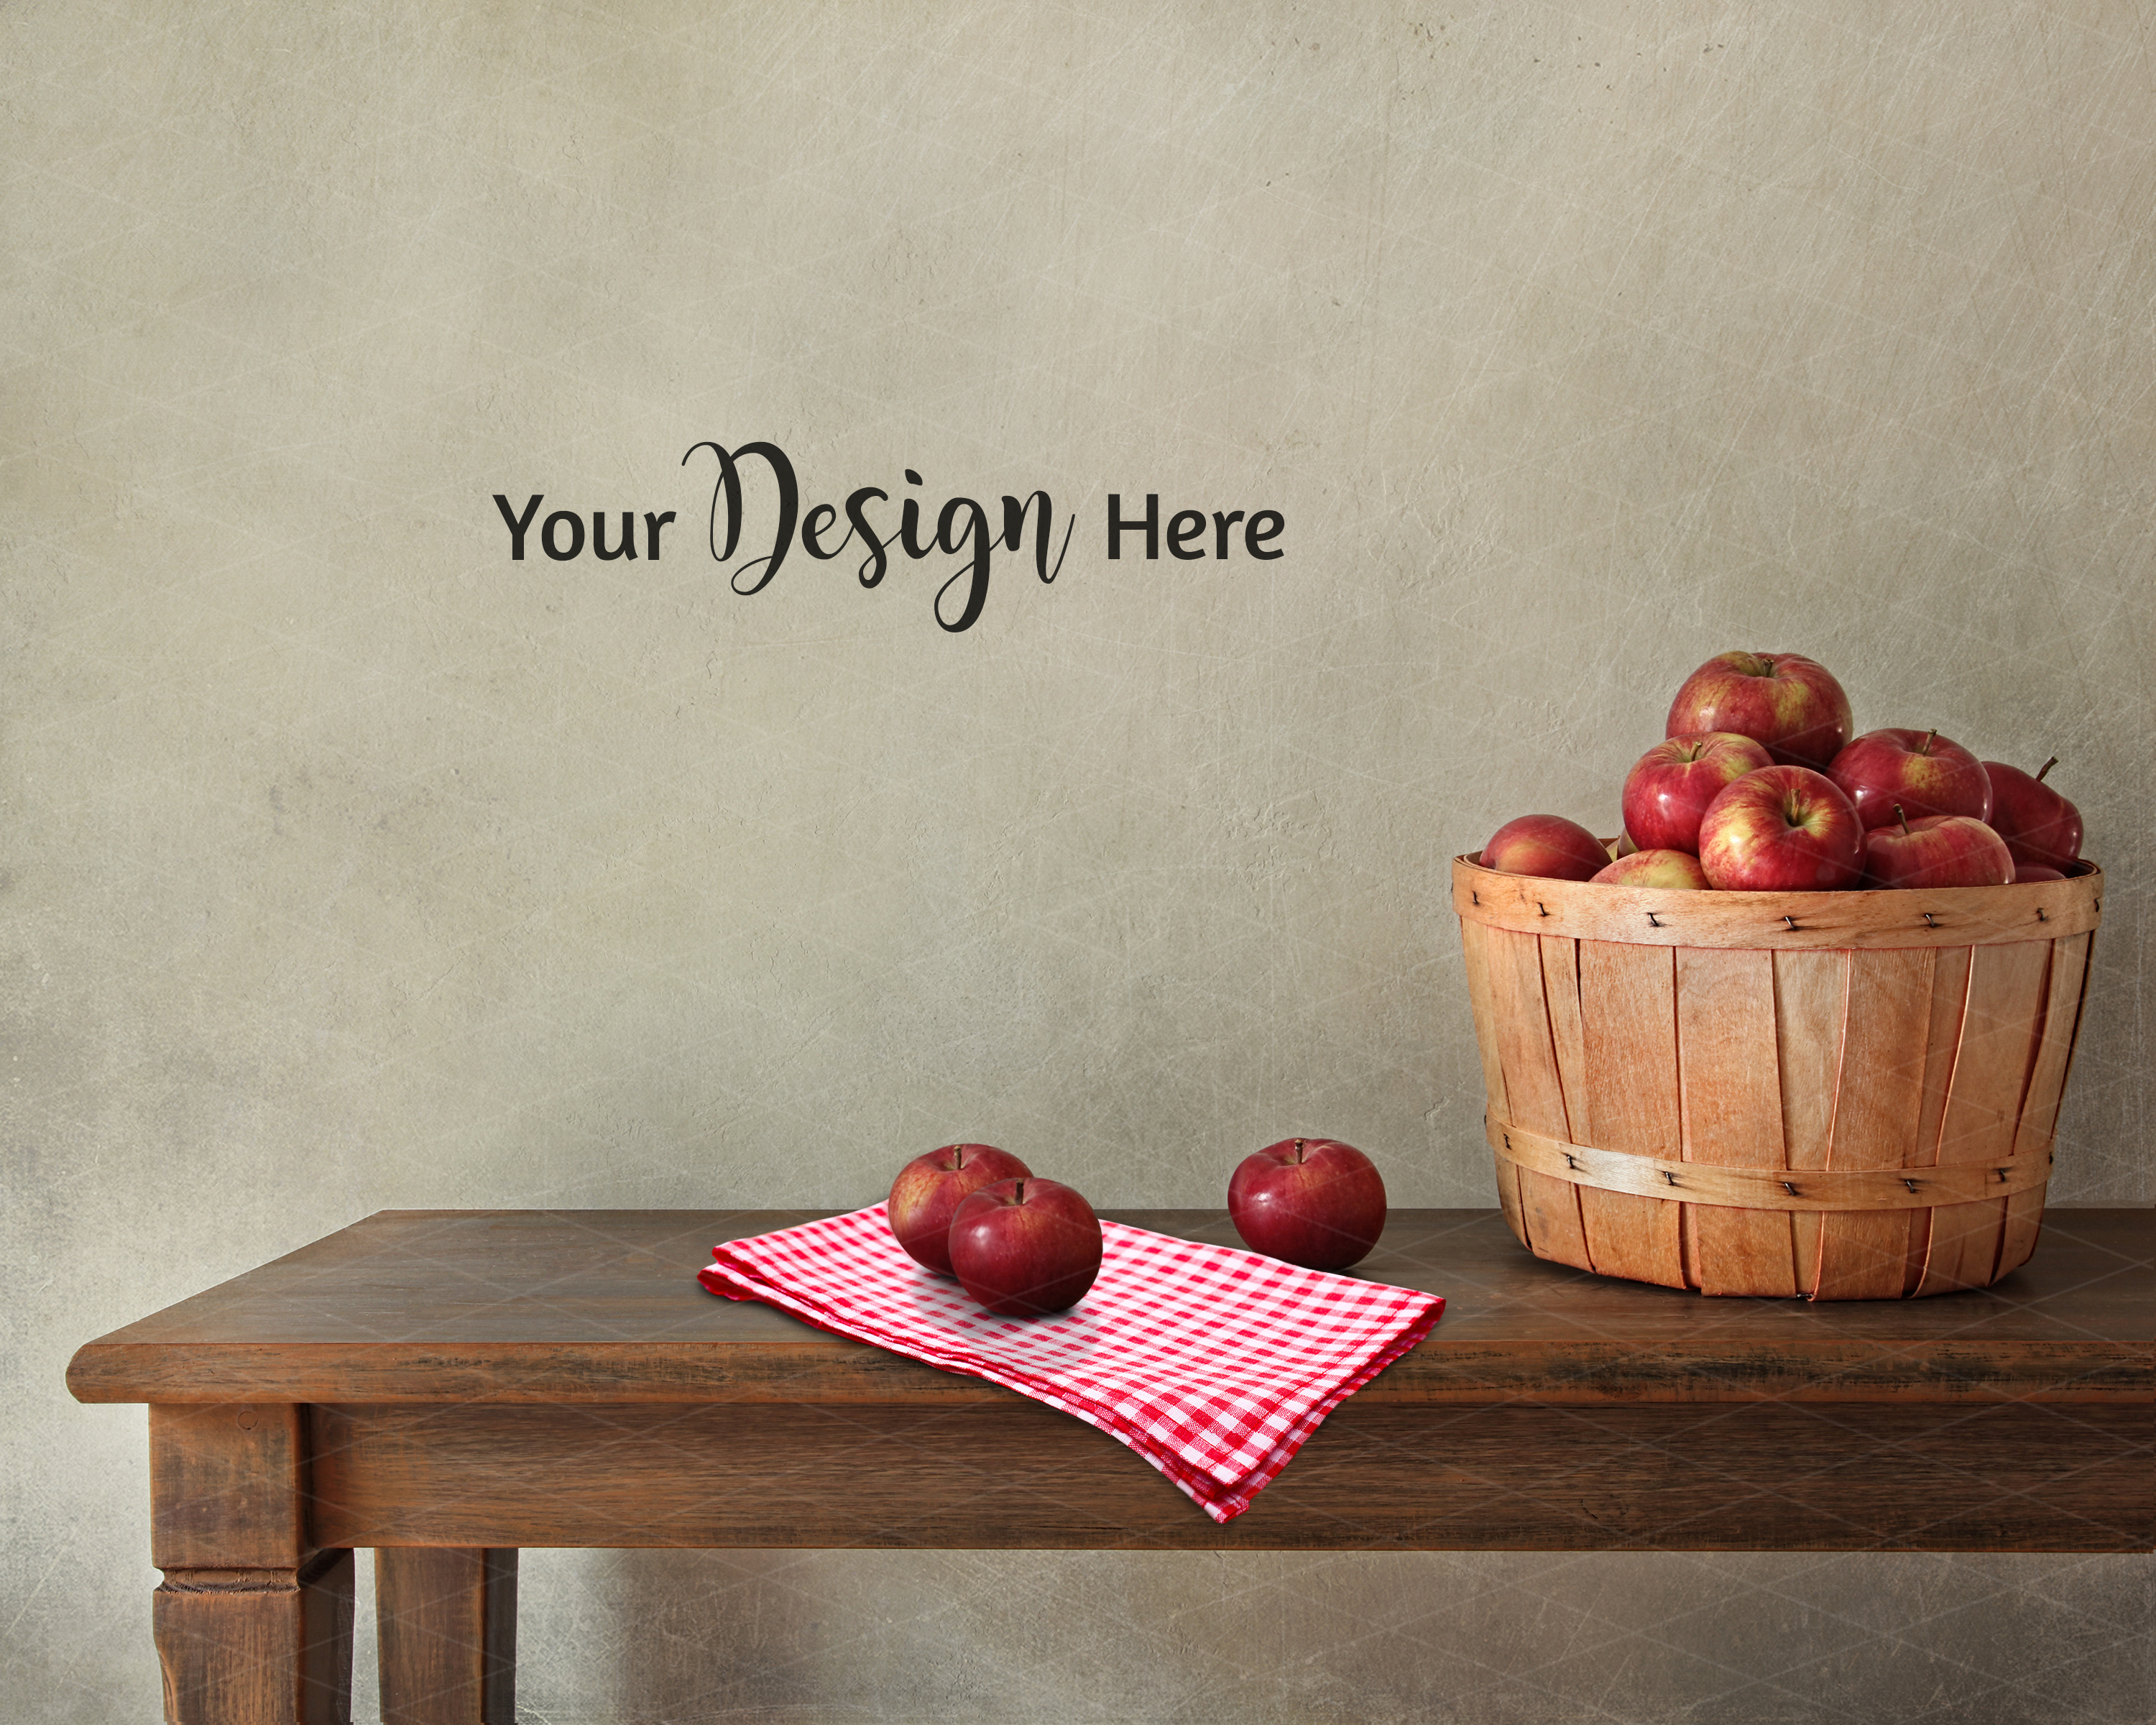 Farmhouse Blank Wall Mockup, Rustic Table Apples 3.2 example image 3